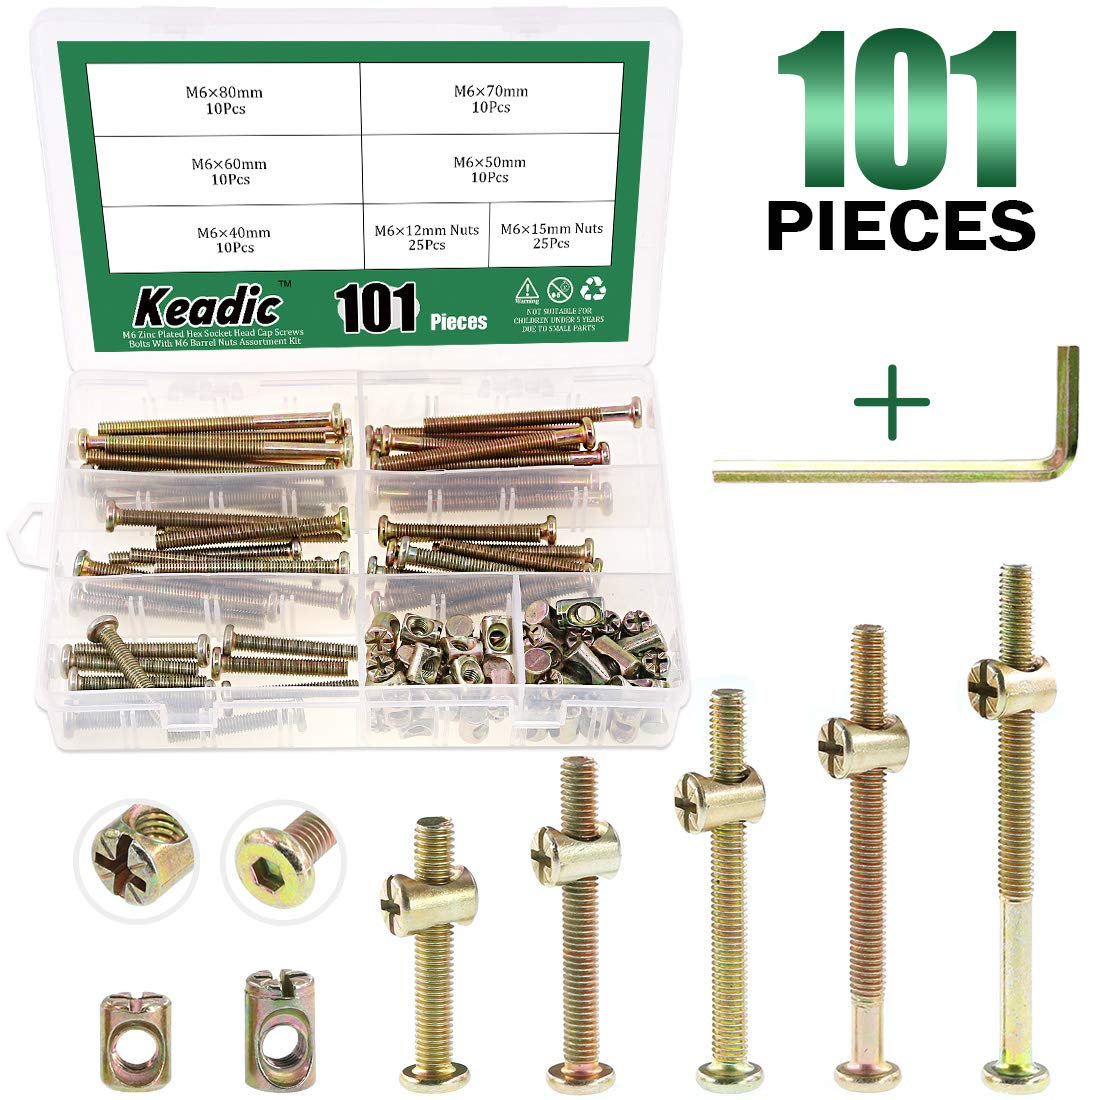 Keadic 100Pcs M6 40/50/60/70/80mm Baby Bed Screws Hardware Replacement Kit, Hex Socket Head Cap Screws Nuts for Furniture Cots Beds Crib, 1 Hex Key for Free - Zinc Plated High Speed Steel